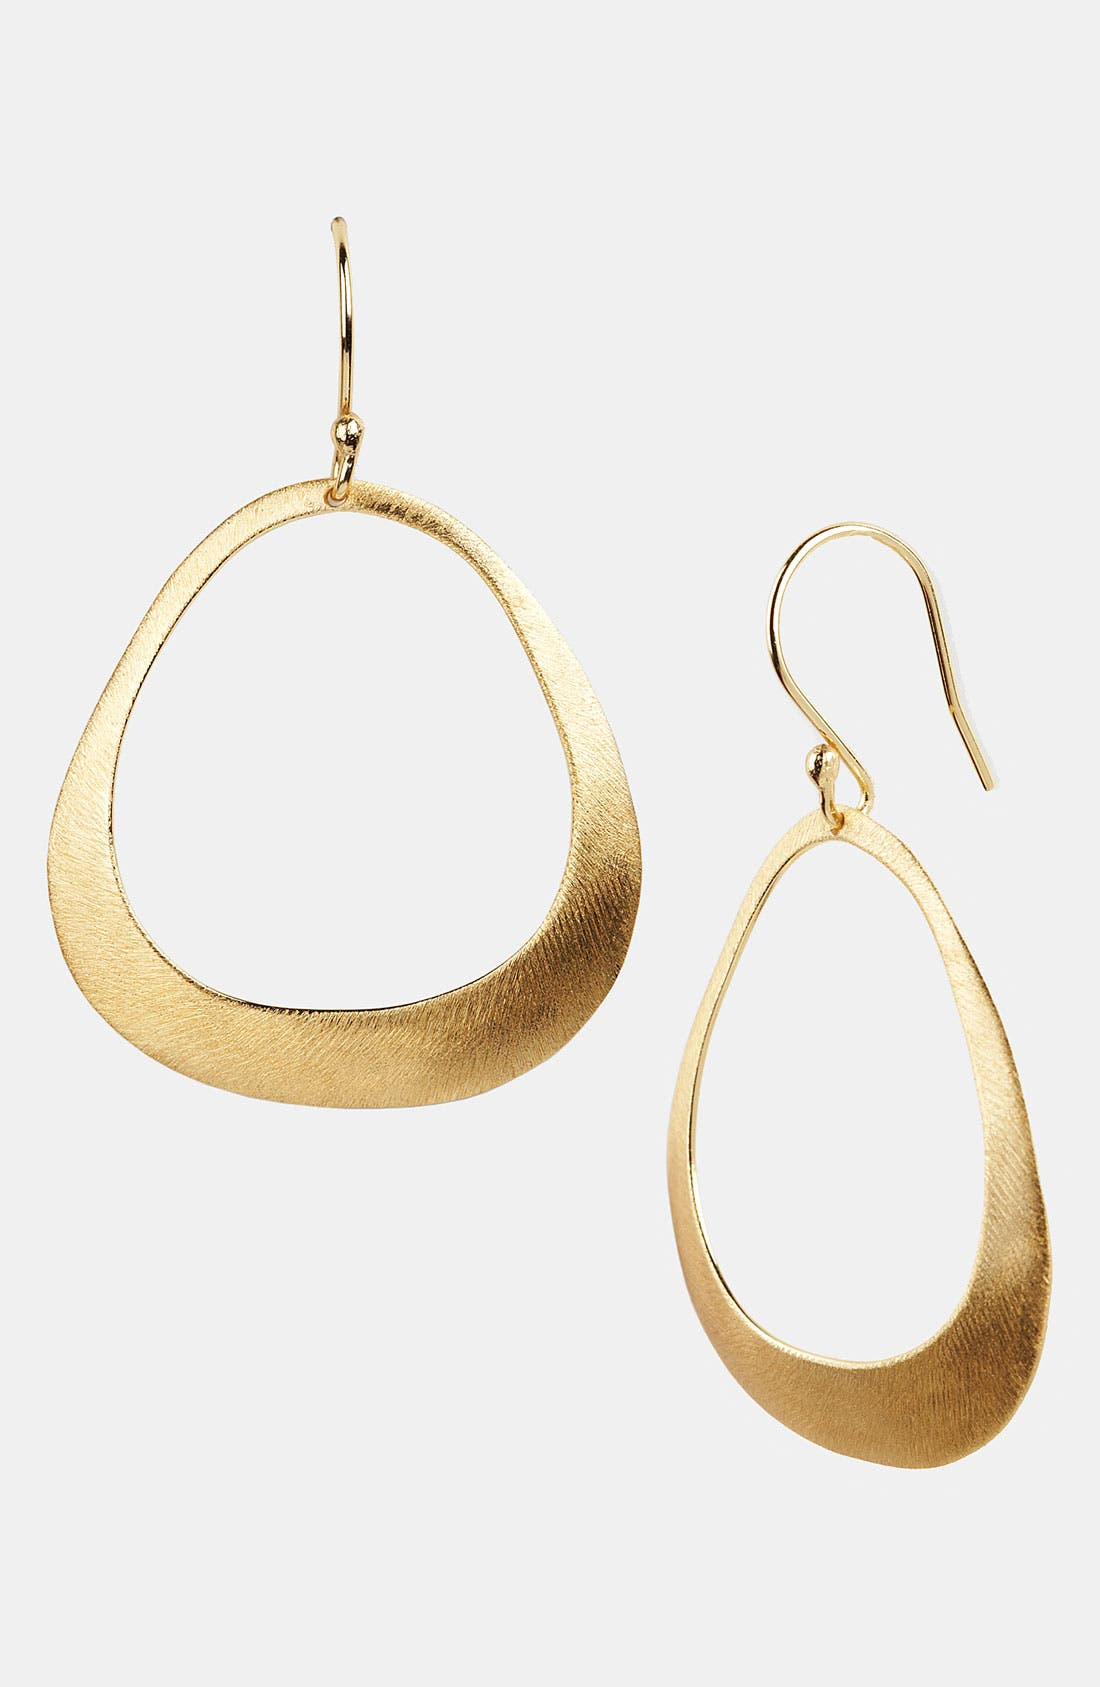 Alternate Image 1 Selected - Argento Vivo Frontal Hoop Earrings (Nordstrom Exclusive)